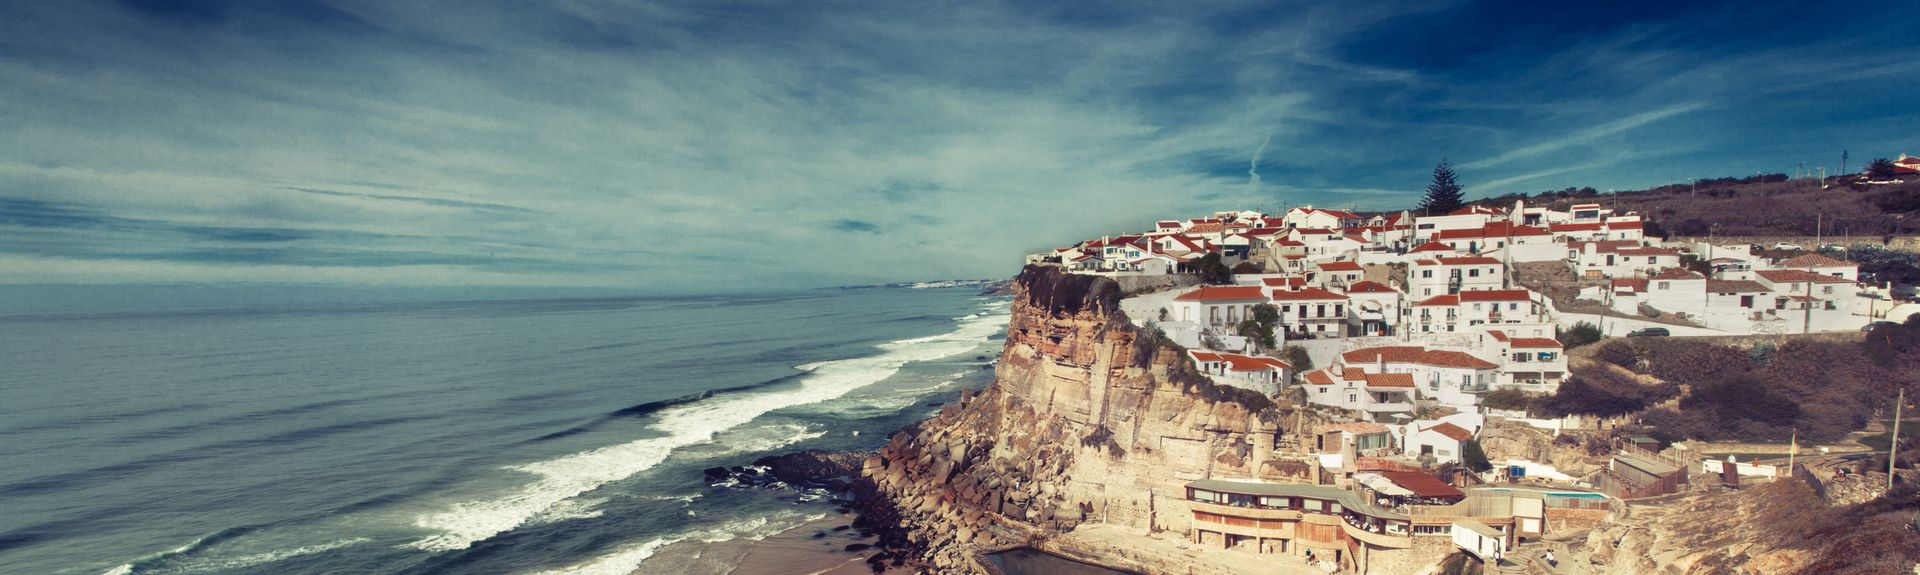 Azenhas do Mar, Colares, Portugal